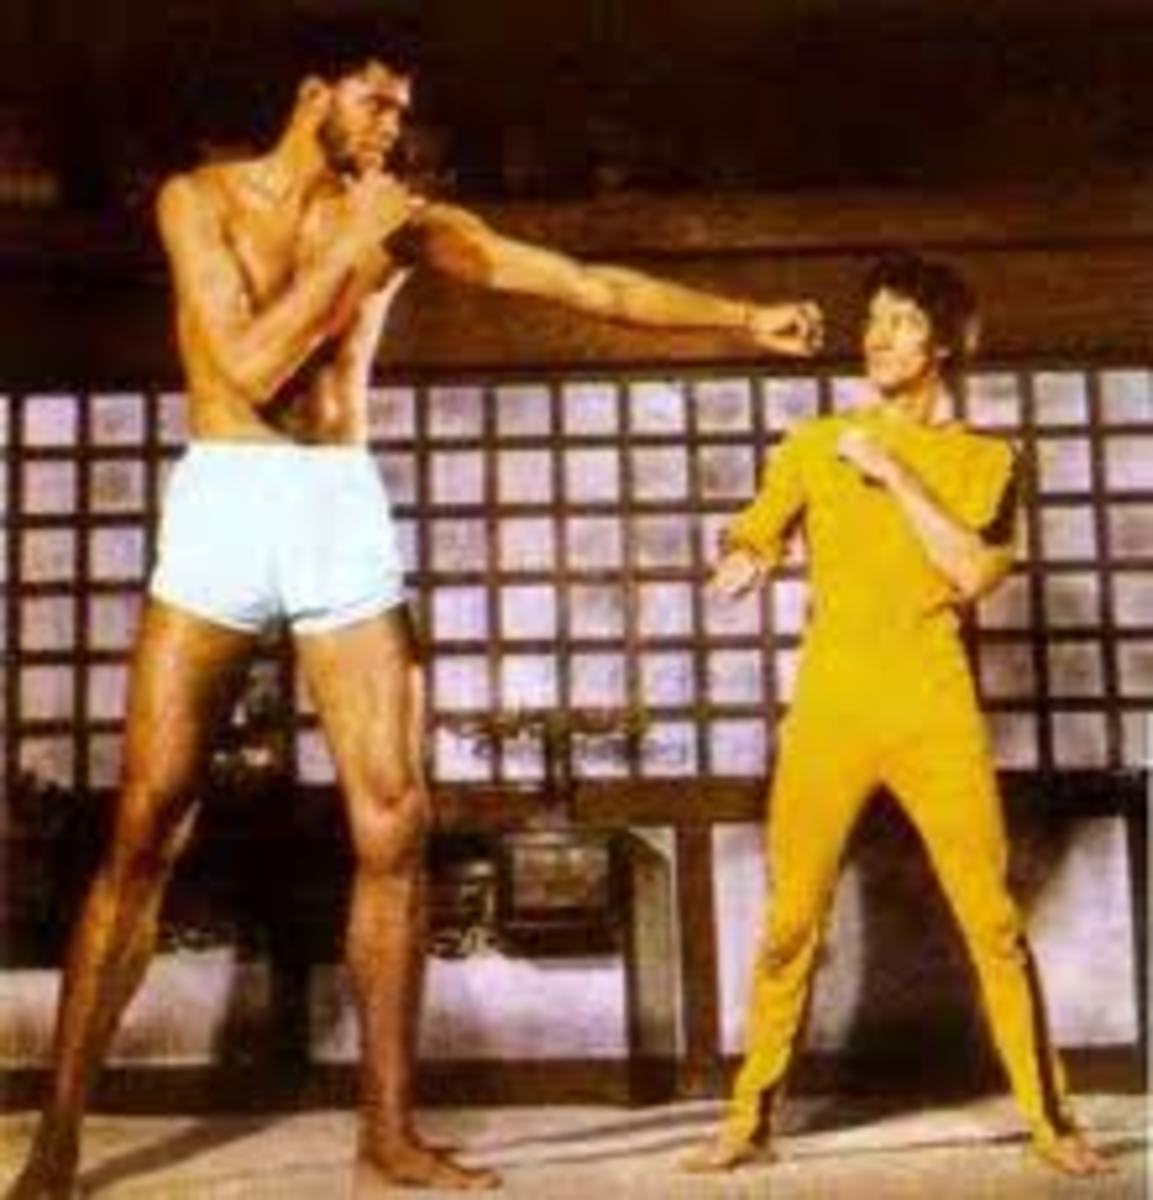 Kareem Abdul Jabbar 7 ft. 2  and Bruce 5 ft. 7